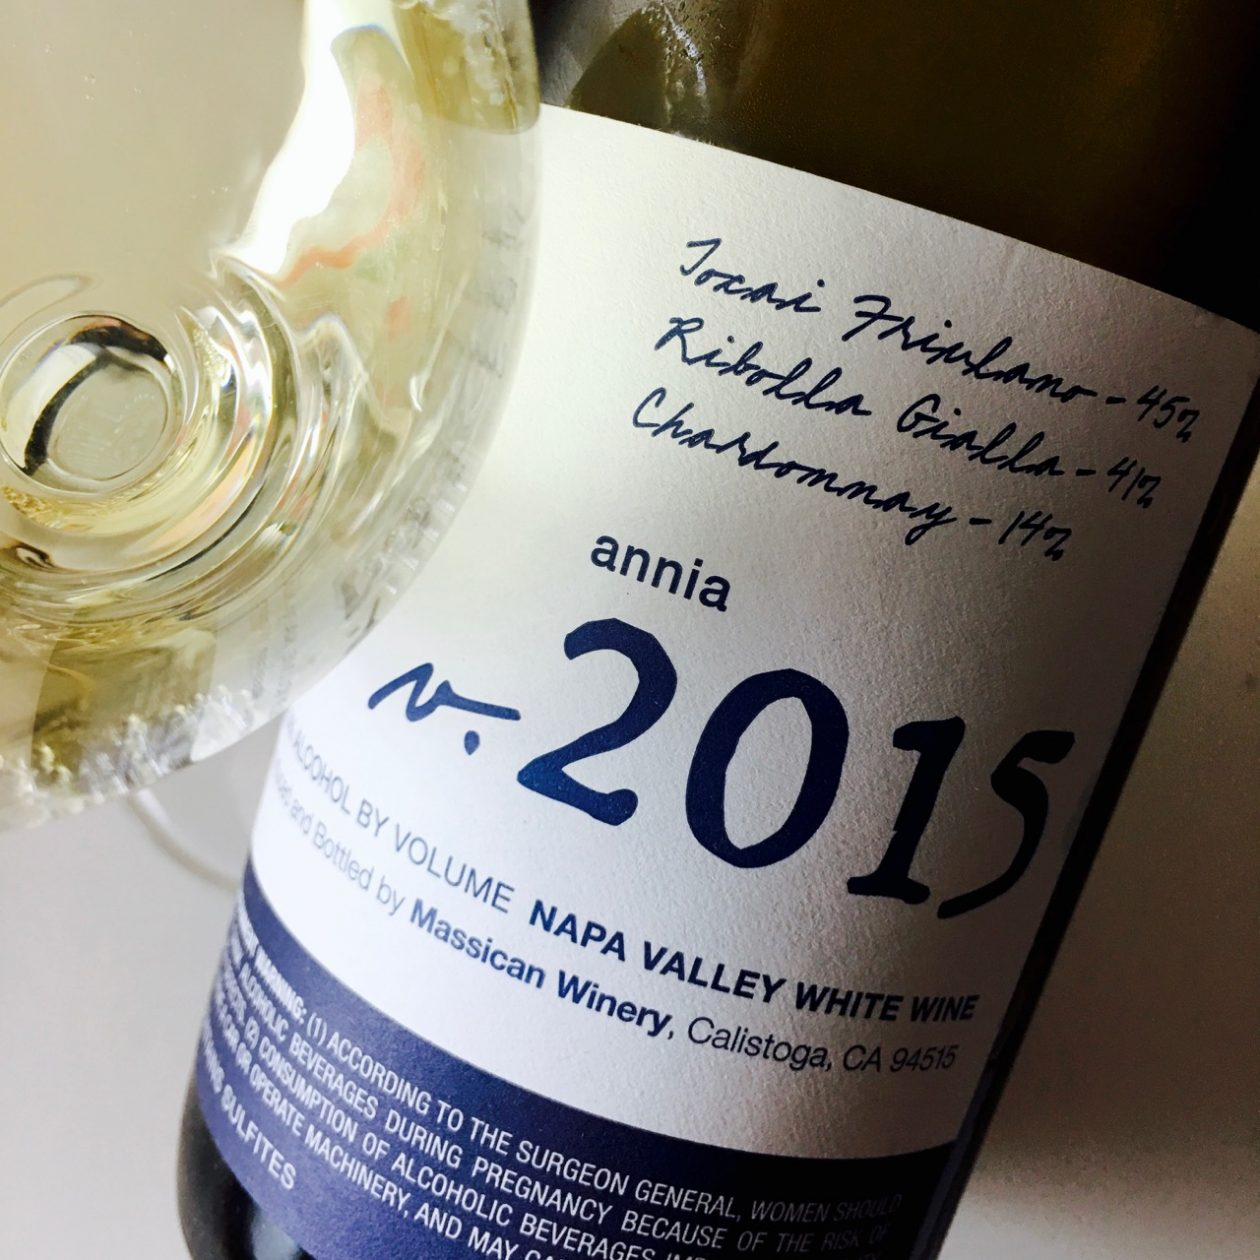 2015 Massican White Blend Annia Napa Valley